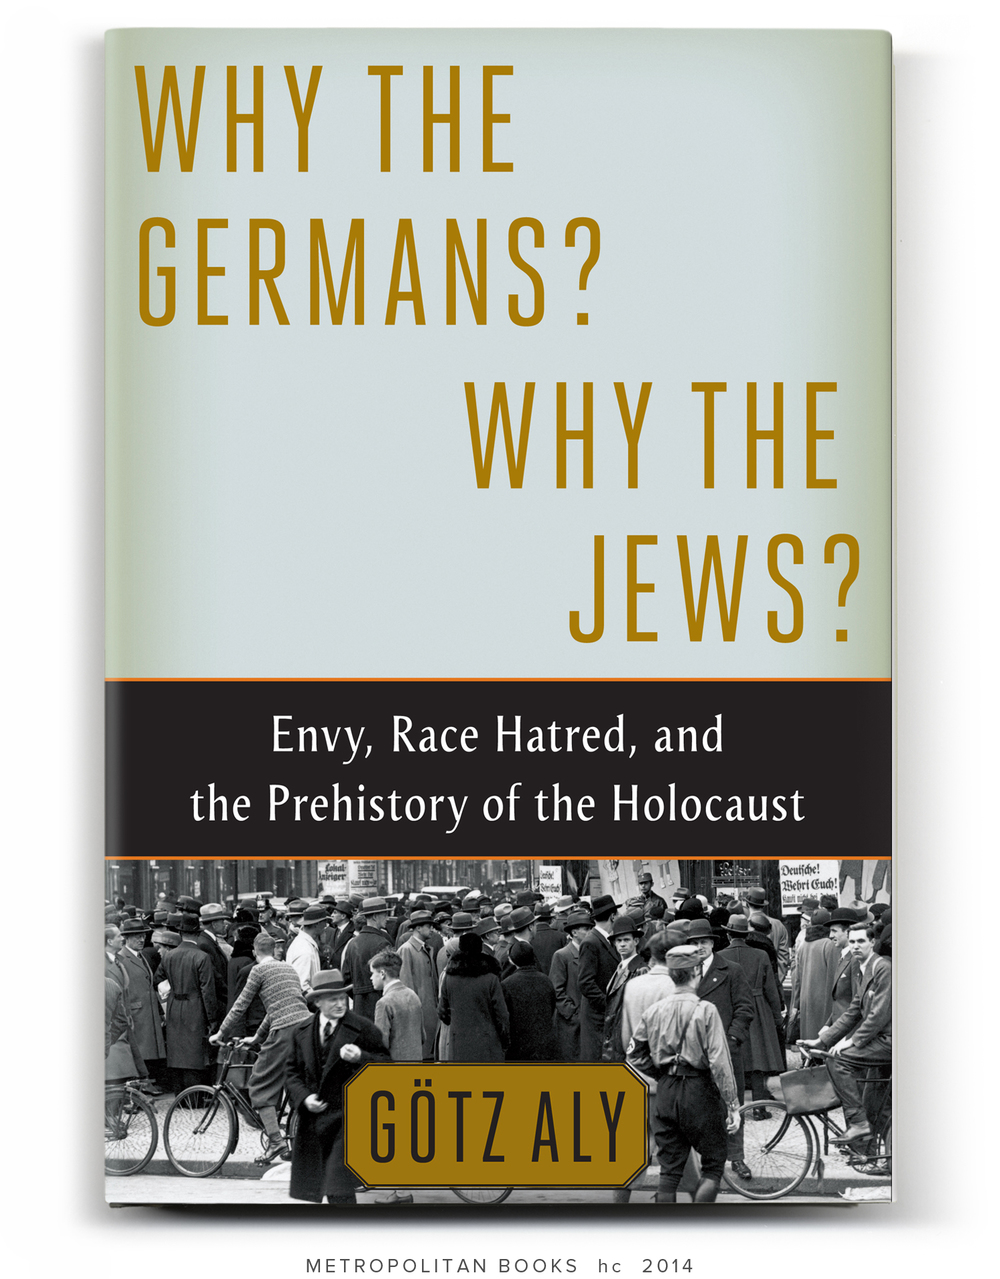 WHY-THE-GERMANS-hc-ss6.jpg